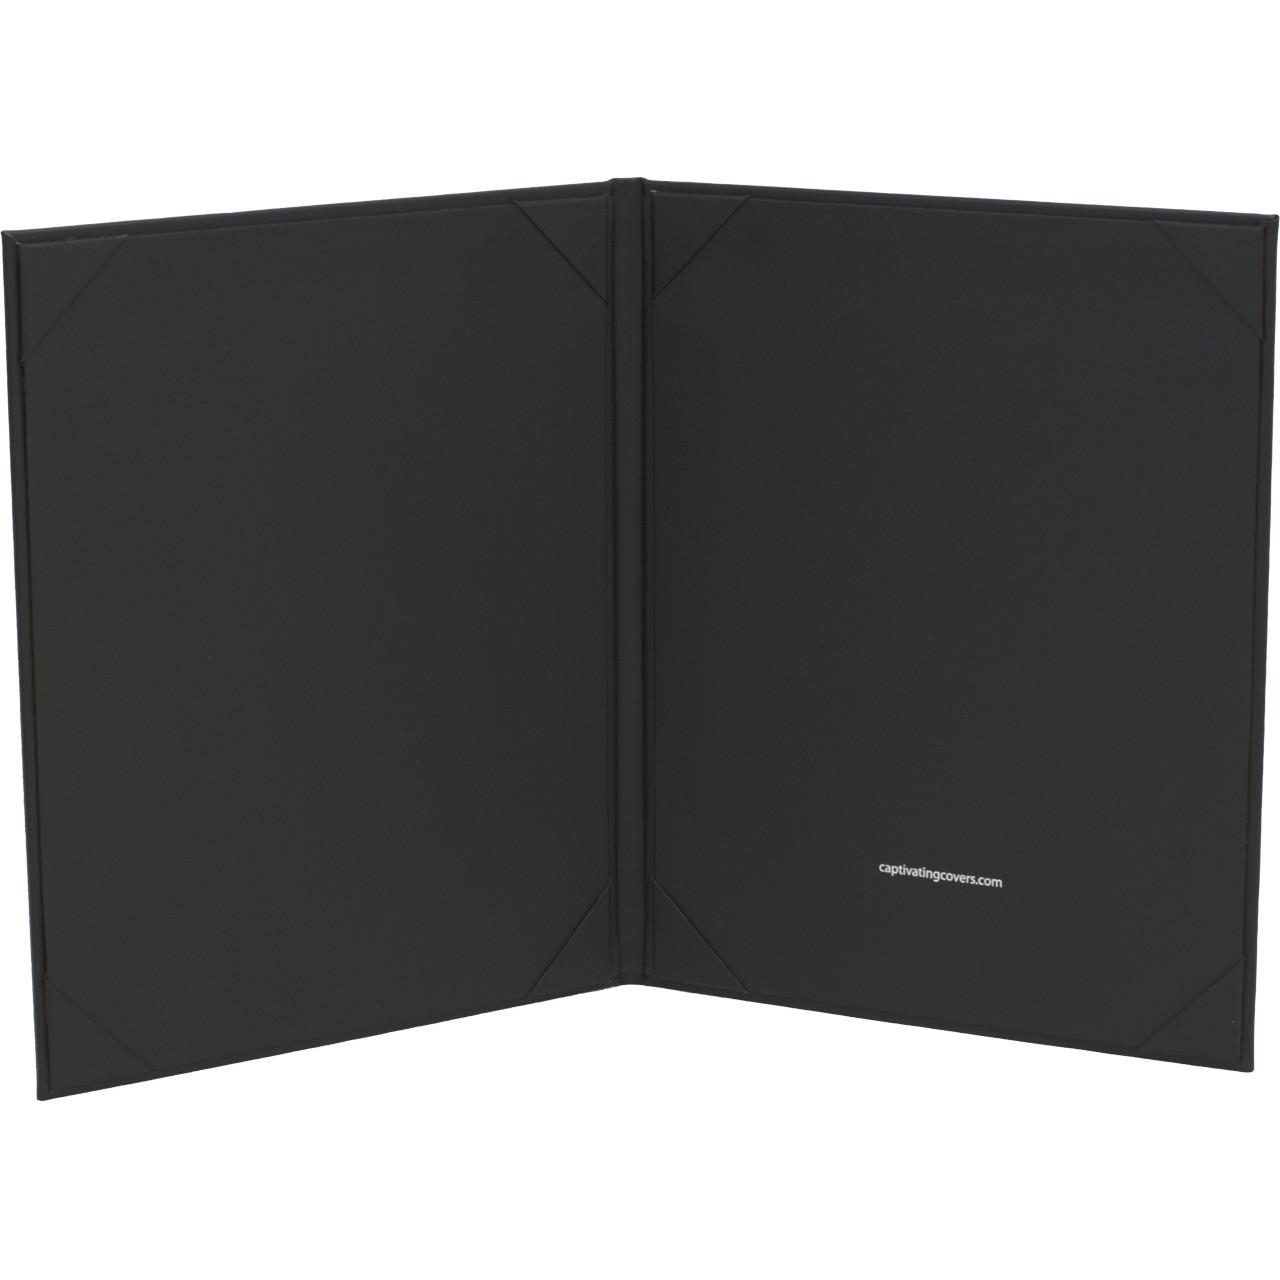 "8 1/2"" x 11"" Insert Menu Cover 2-panel black, inside"